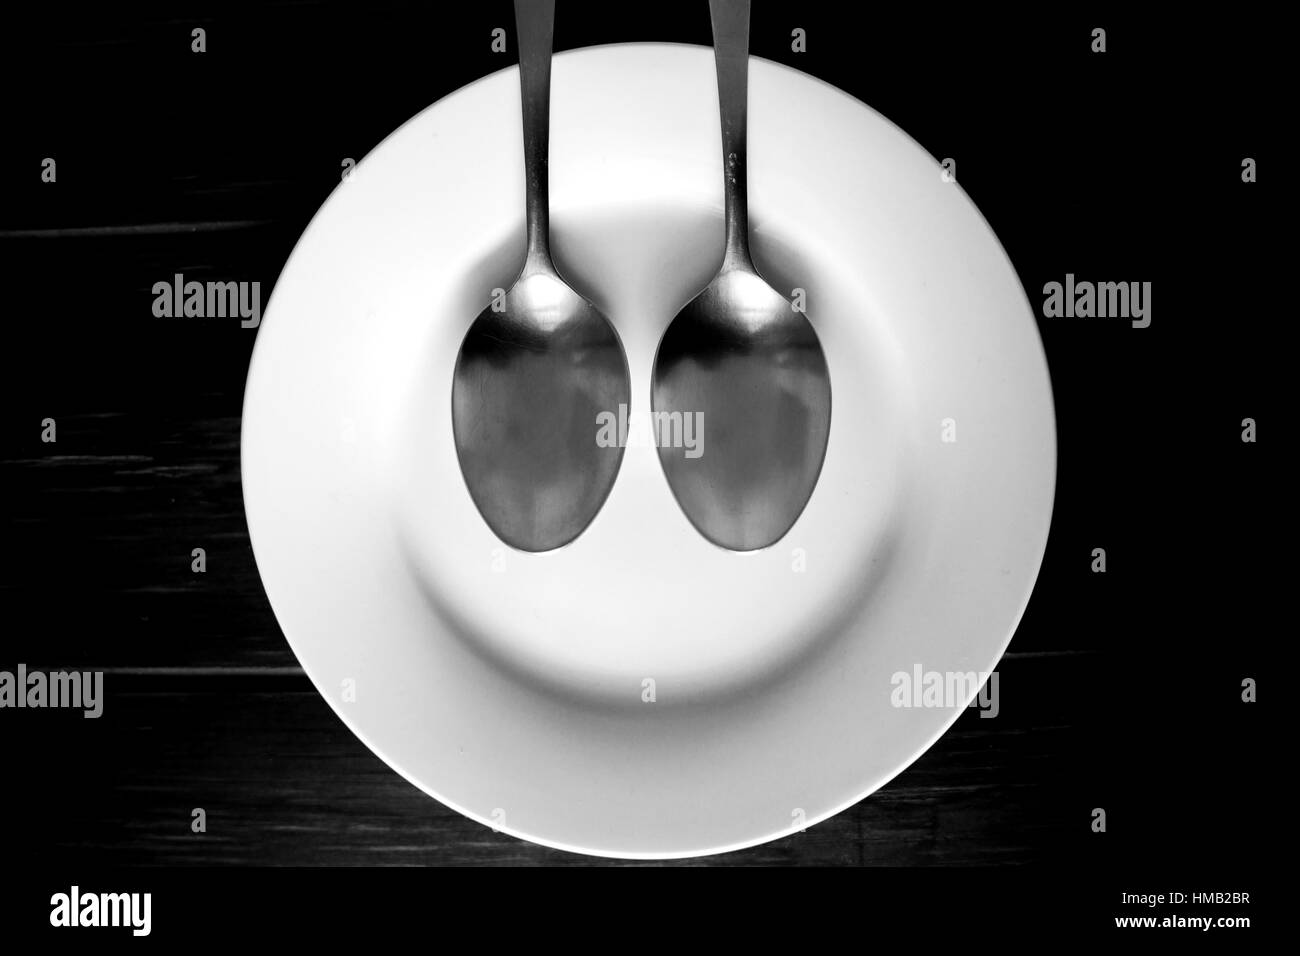 Spoons on plate, laughing face - Stock Image